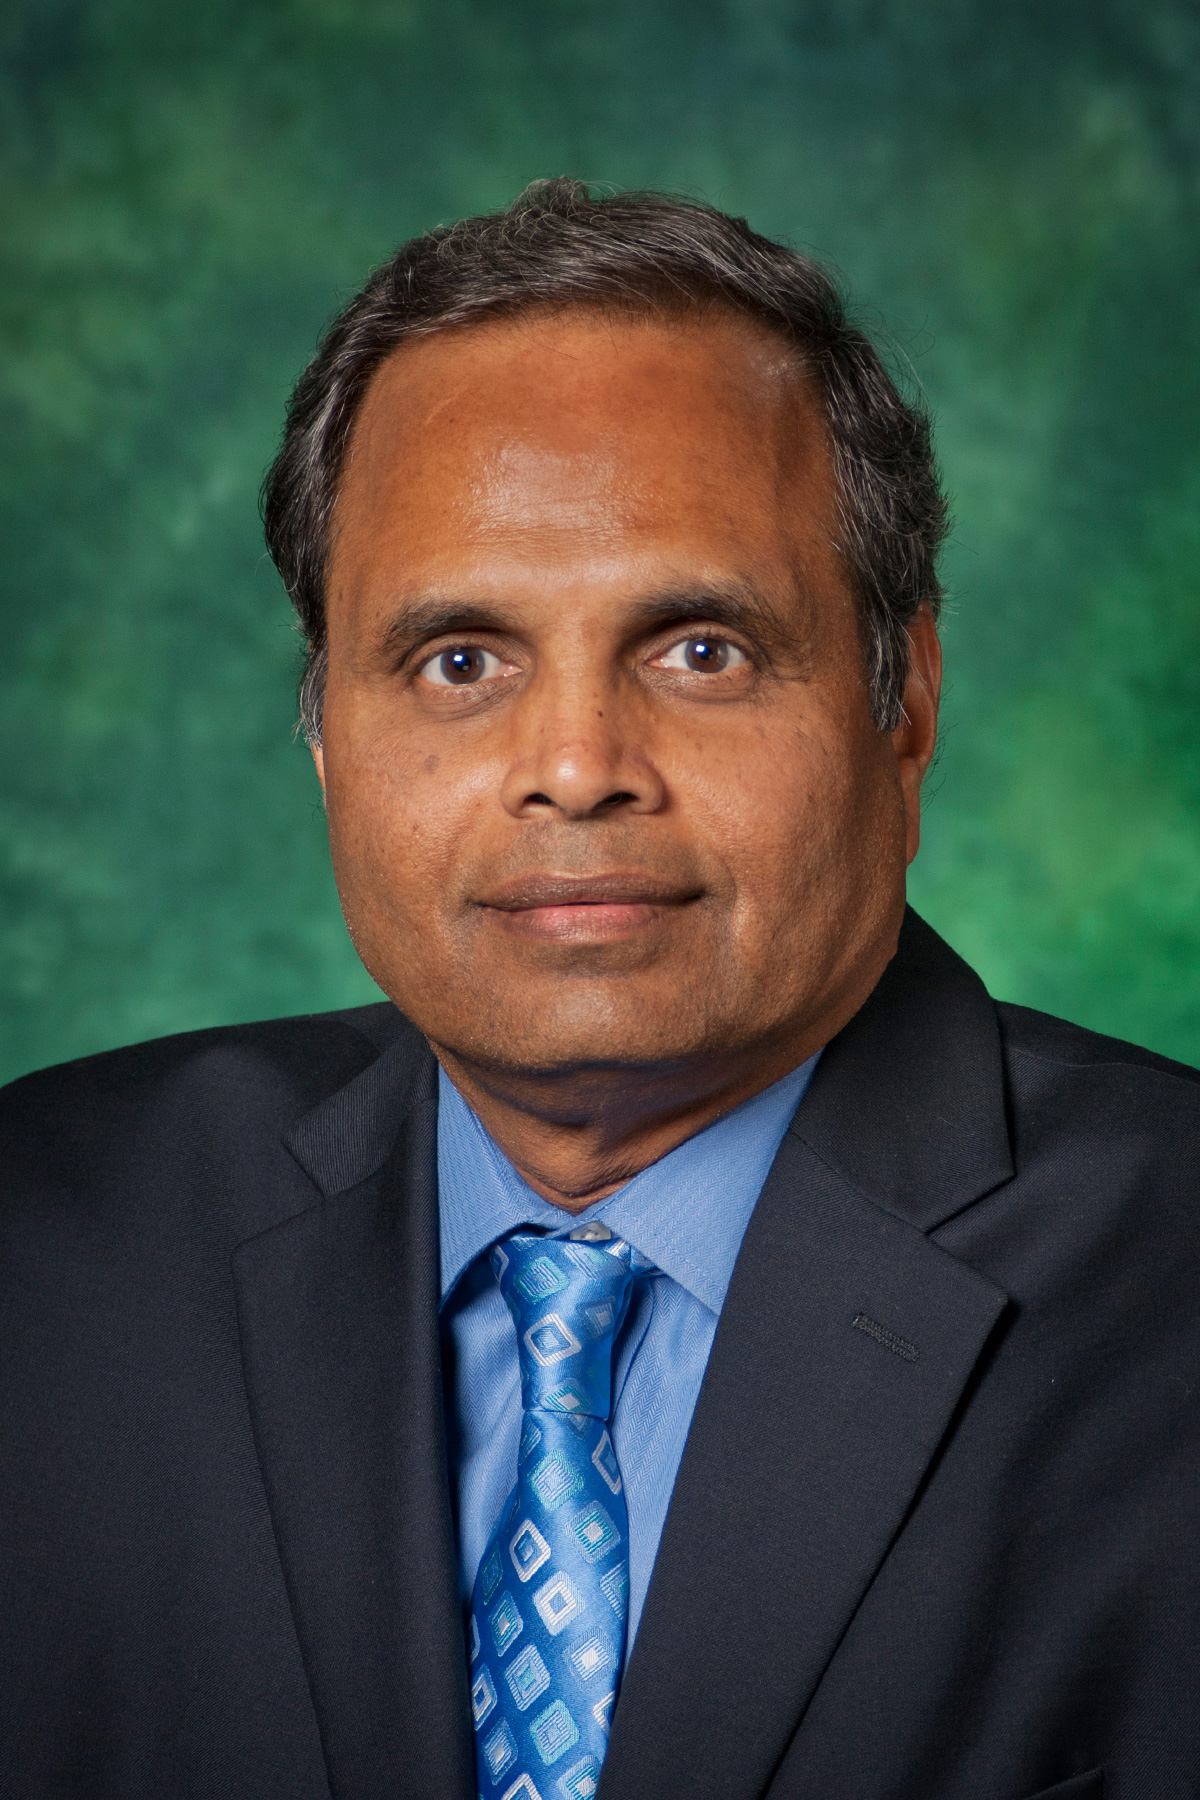 UNT professor Ram Dantu has been nominated for a <em>D</em> CEO CIO/CTO award